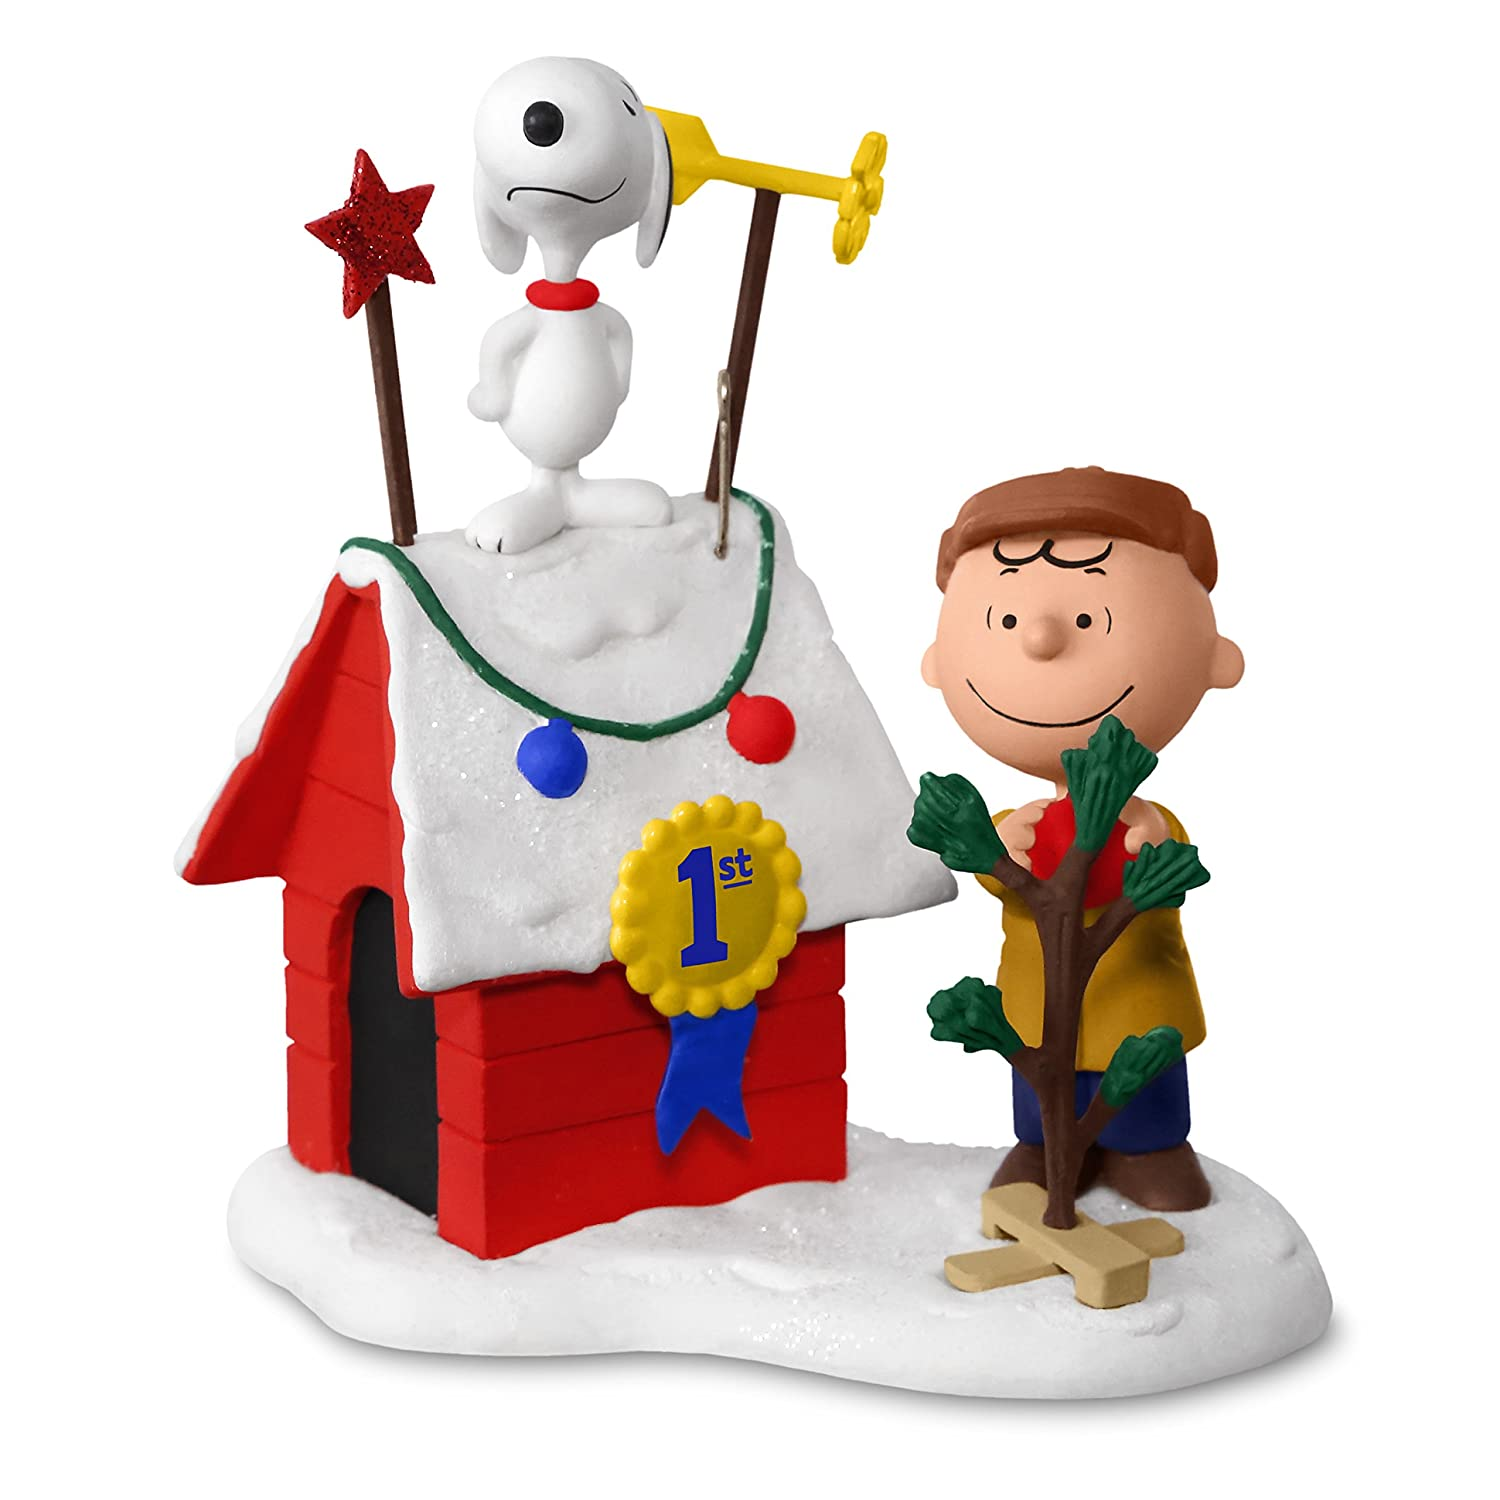 Amazon.com: PEANUTS Charlie Brown and Snoopy Decked-Out Doghouse ...